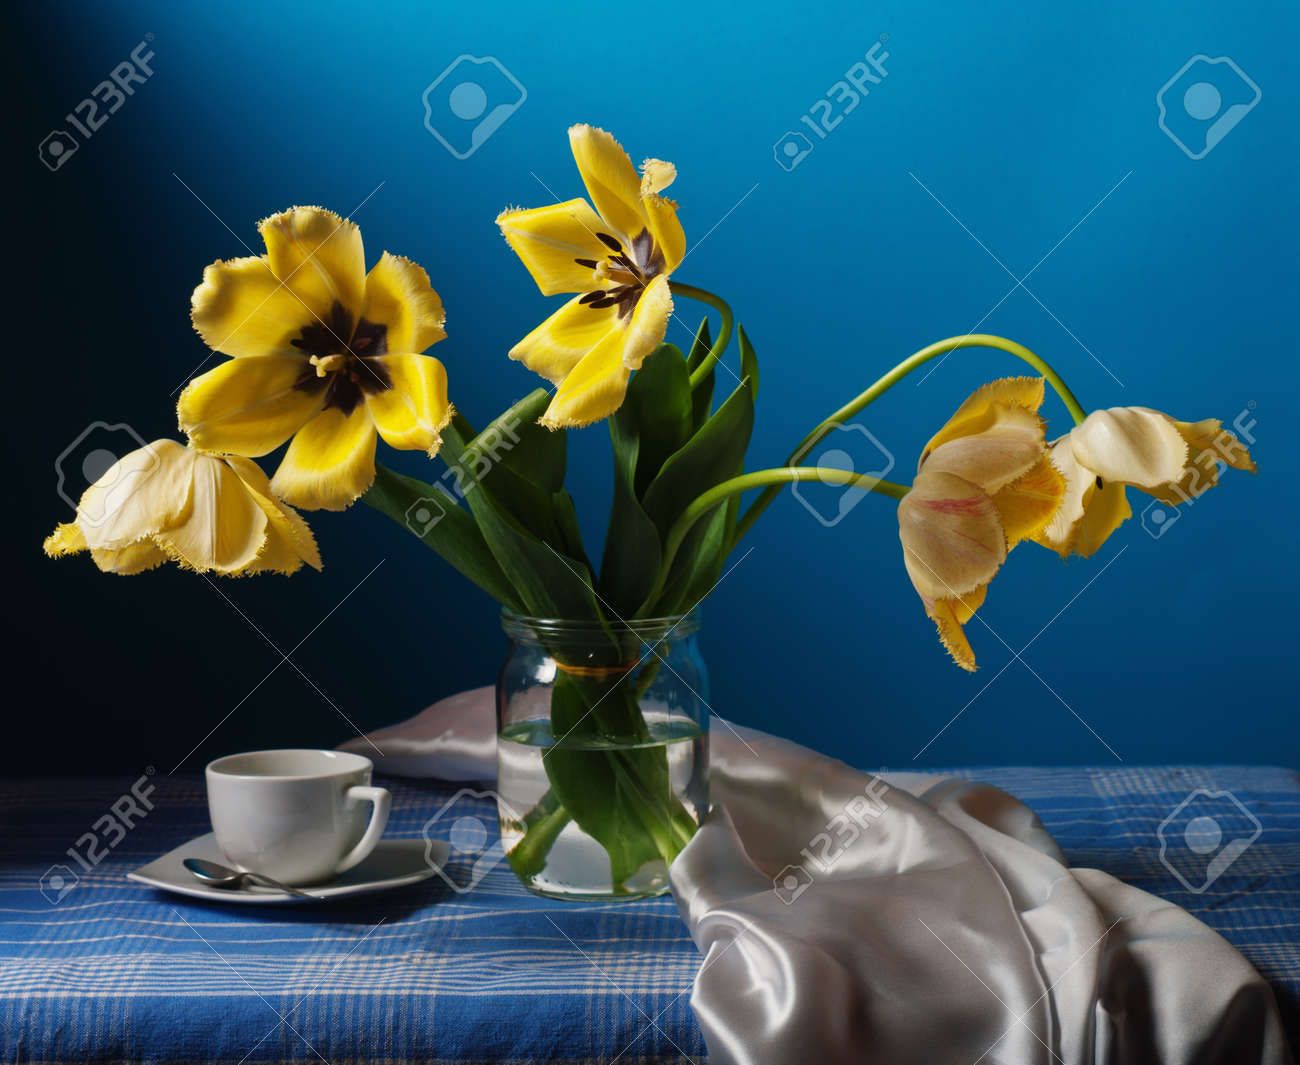 Still life with yellow tulips Stock Photo - 13338487